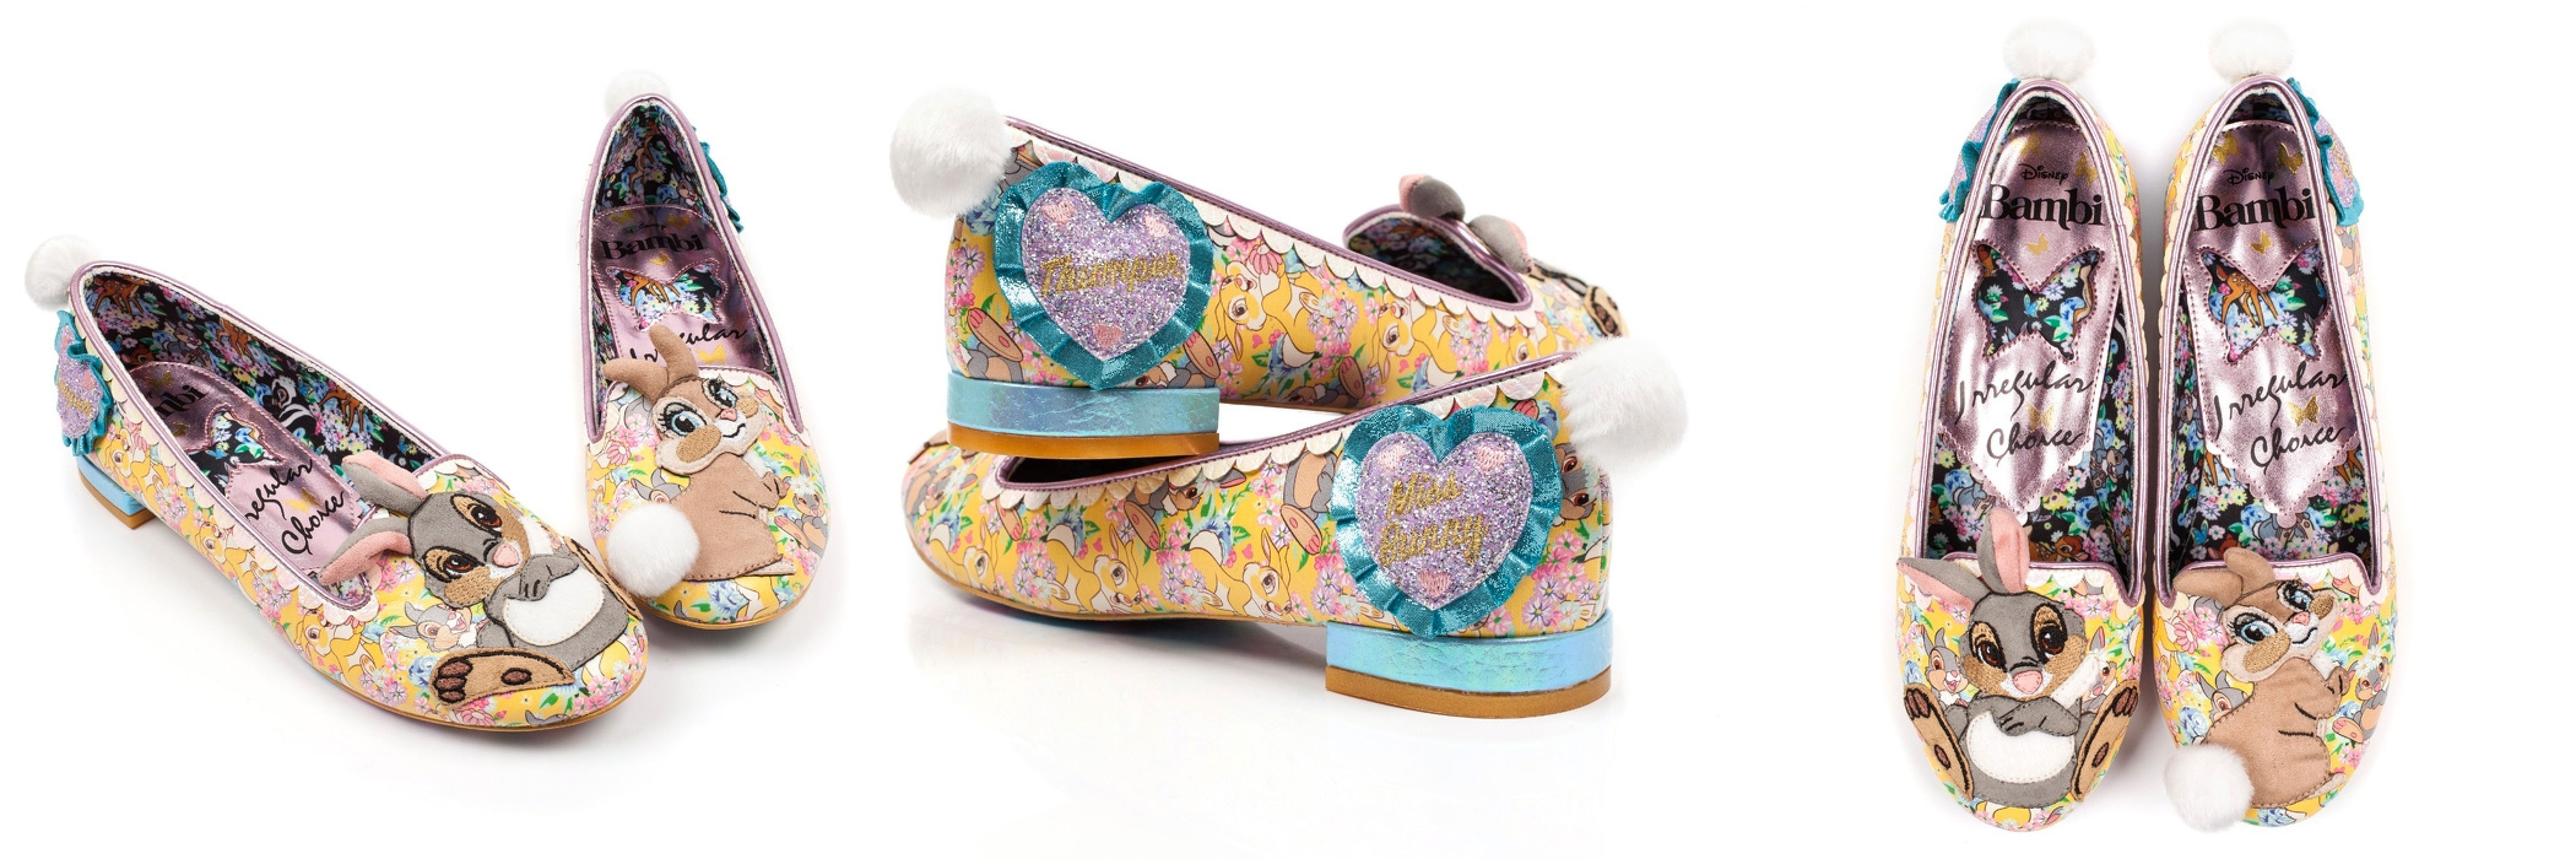 Irregular Choice x Bambi Shoes - Sweet As Can Be Thumper Flat Shoes